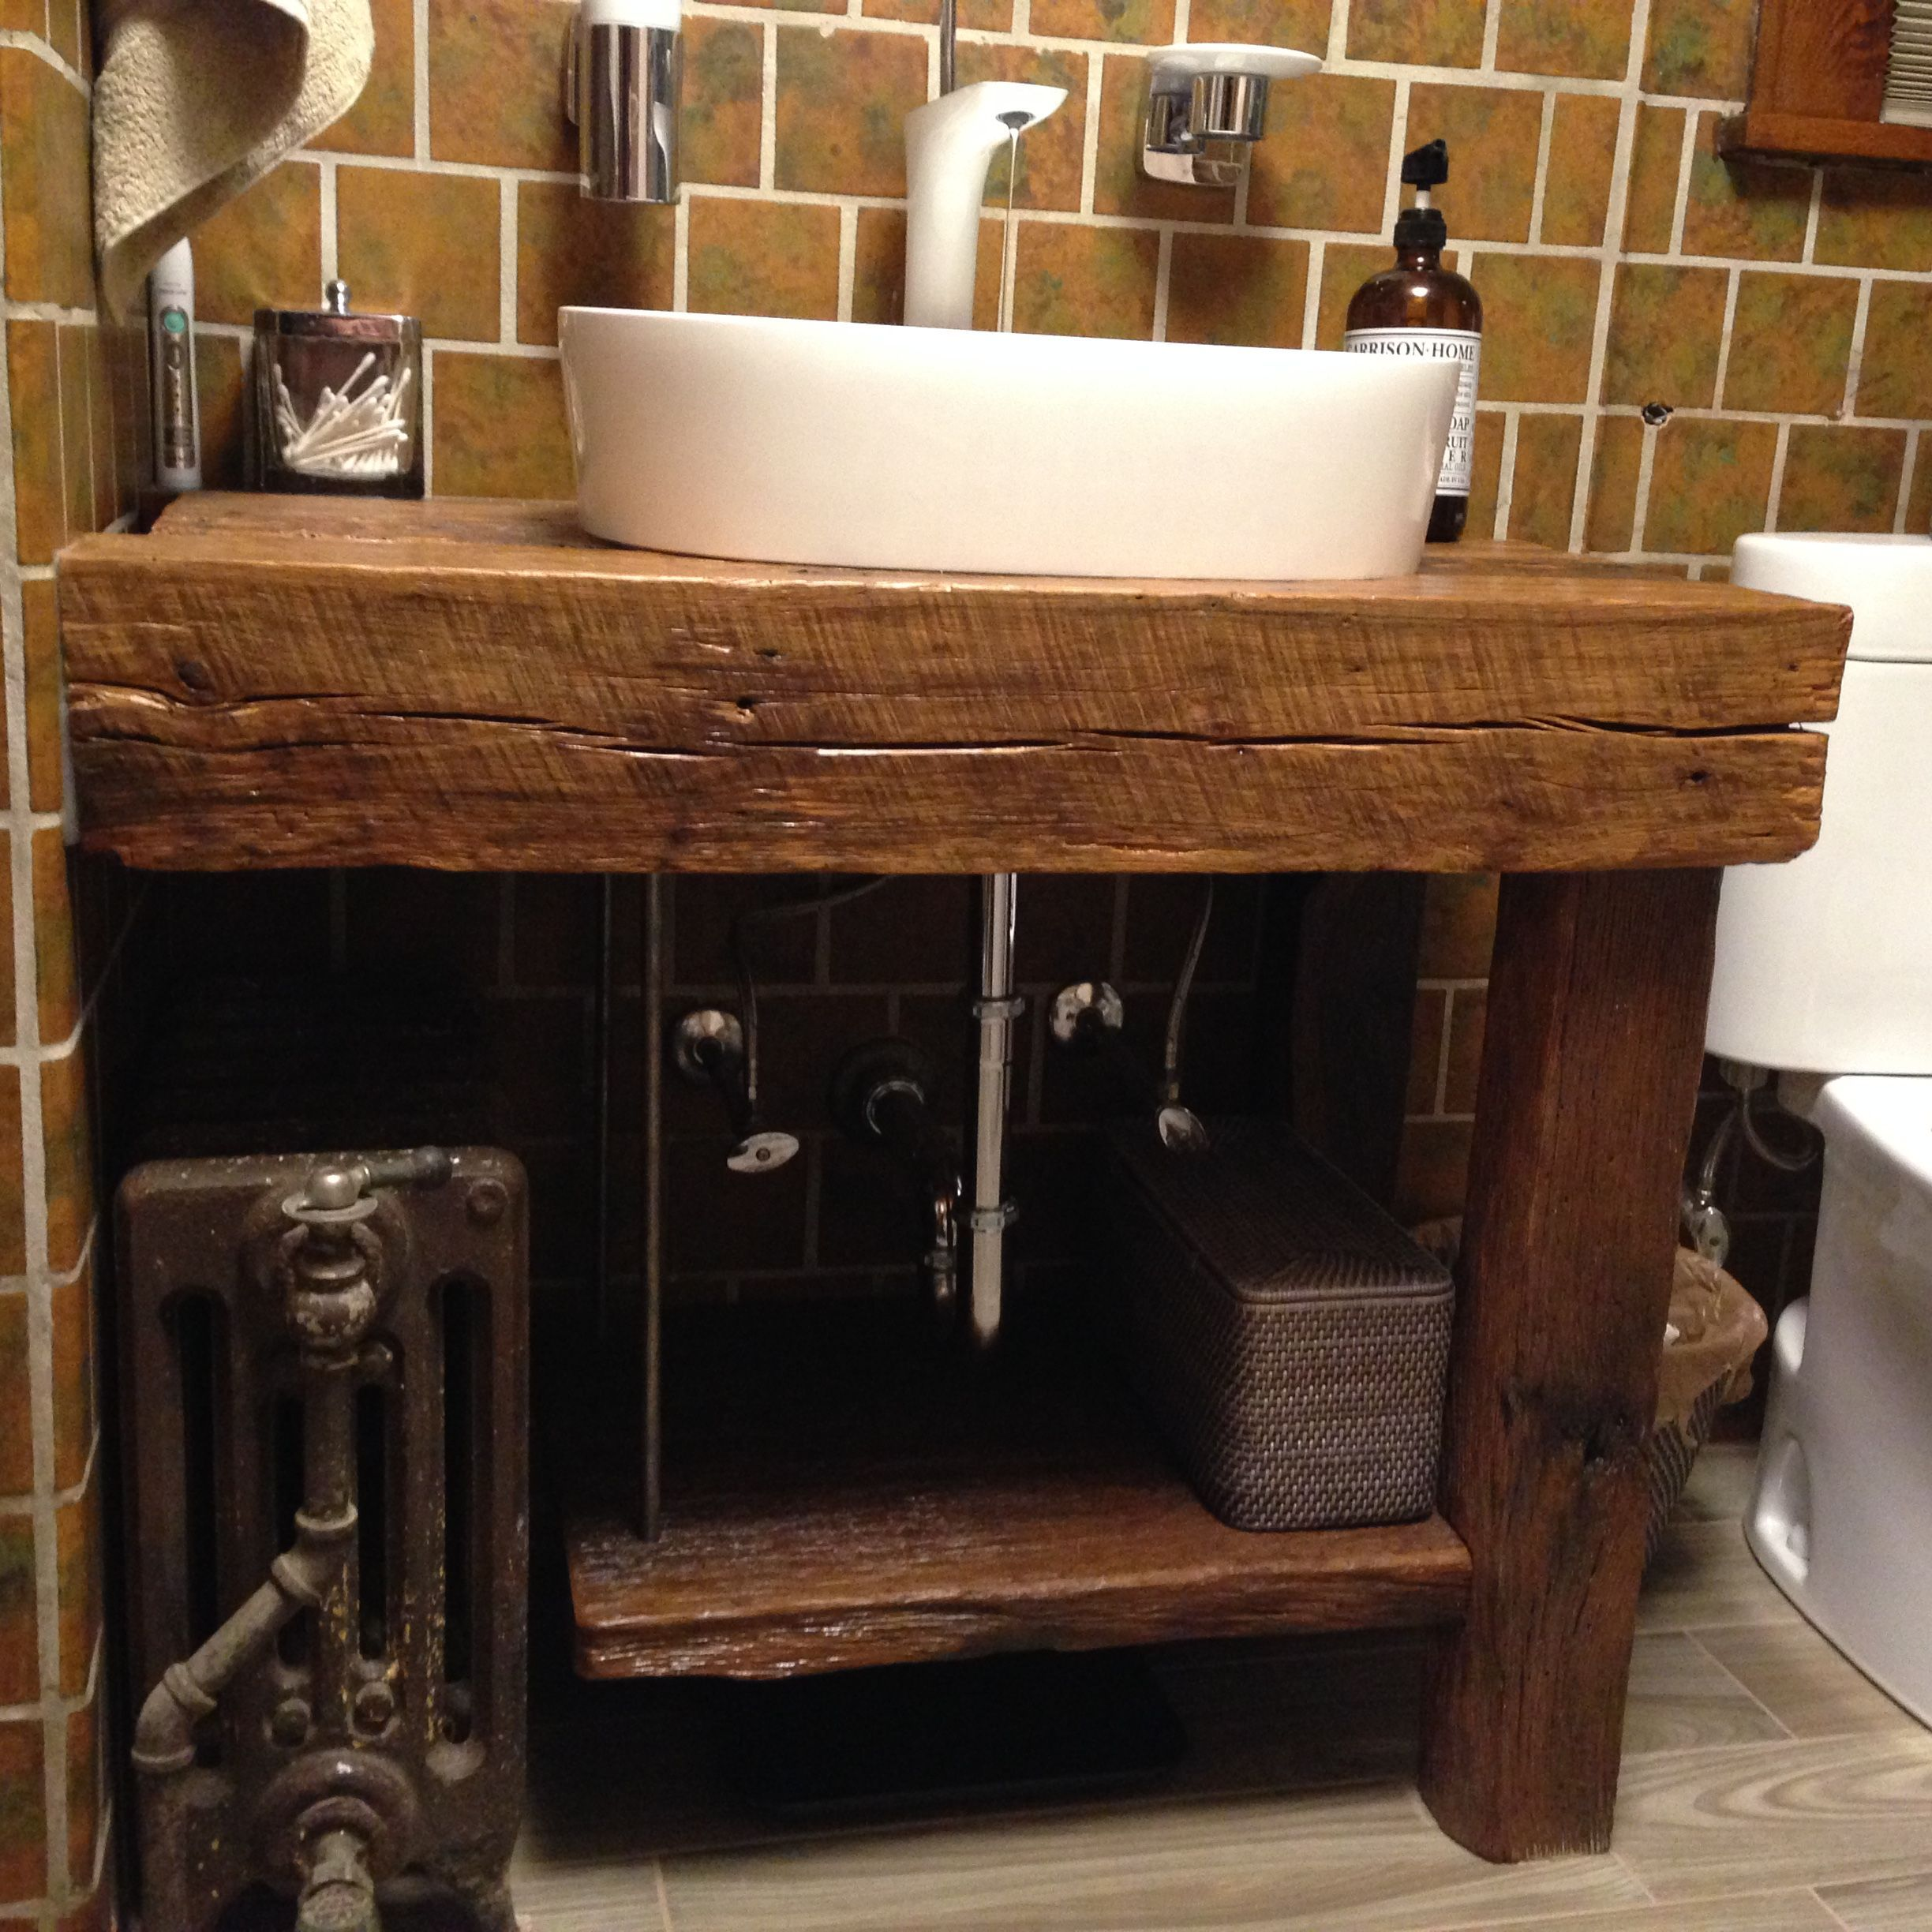 Awesome  Specialty Items  Comments Off On Rustic Copper Sink Barn Wood Vanity